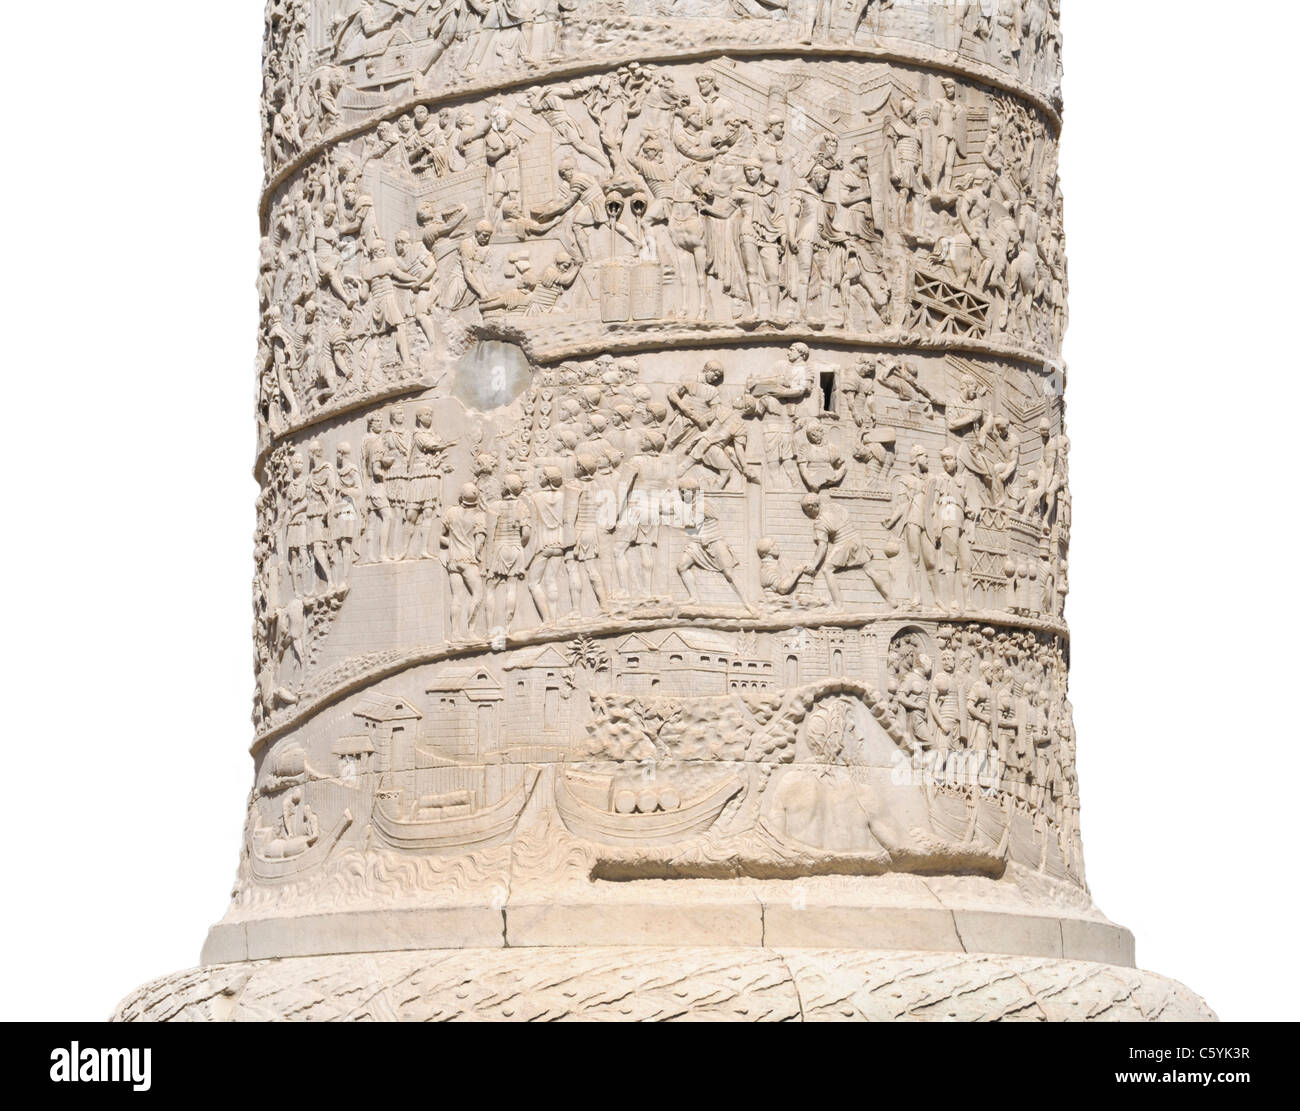 Trajan's Column (Colonna Traiana) detail, Rome - Stock Image